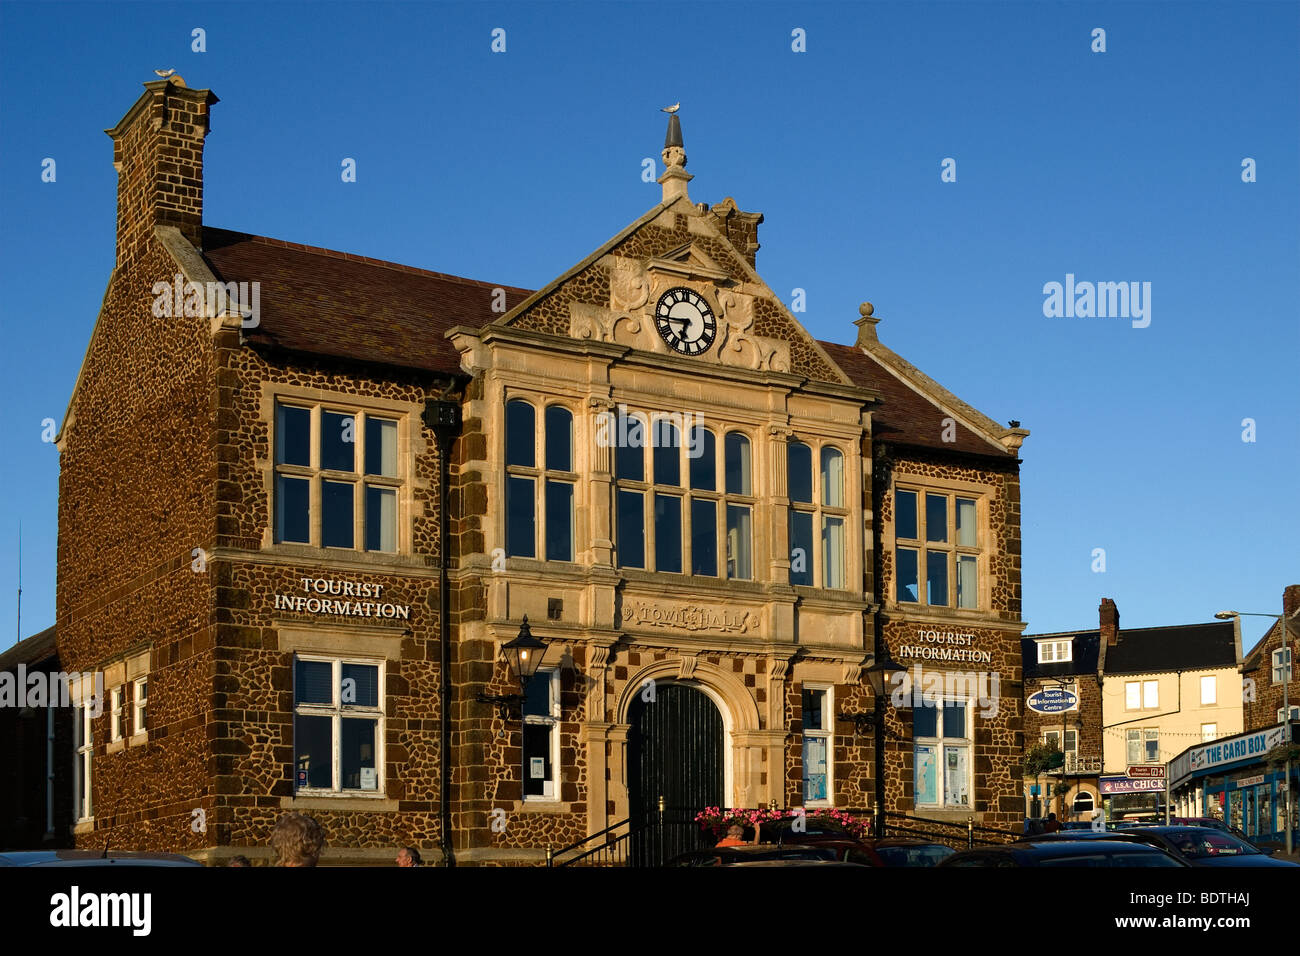 Handsome former Town Hall at Hunstanton Norfolk now a Tourist Information Office - Stock Image